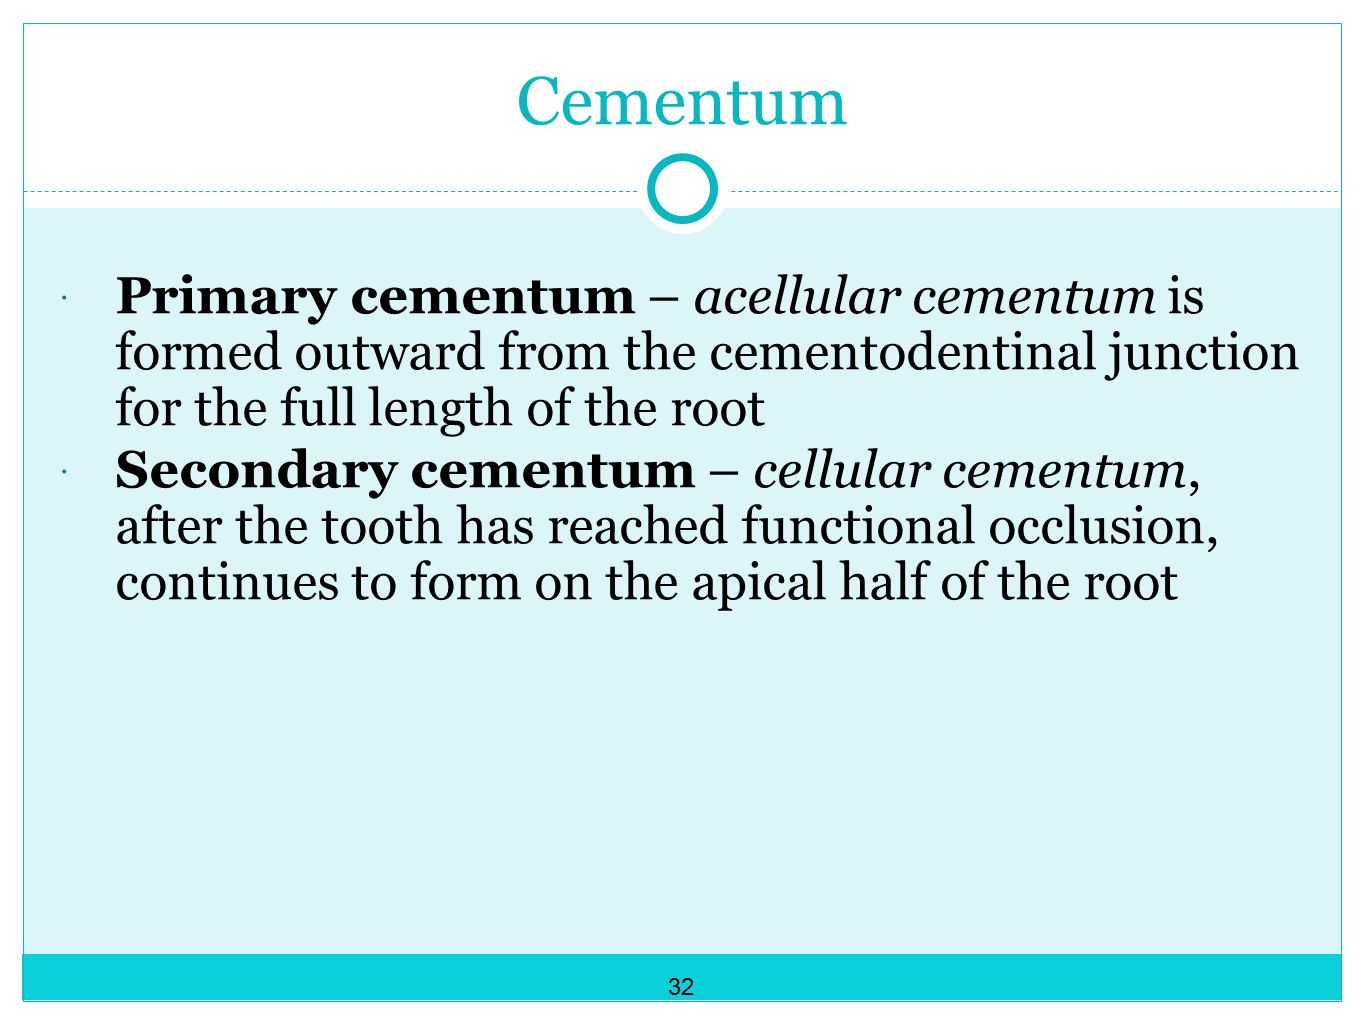 Cementum Primary cementum – acellular cementum is formed outward from the cementodentinal junction for the full length of the root.